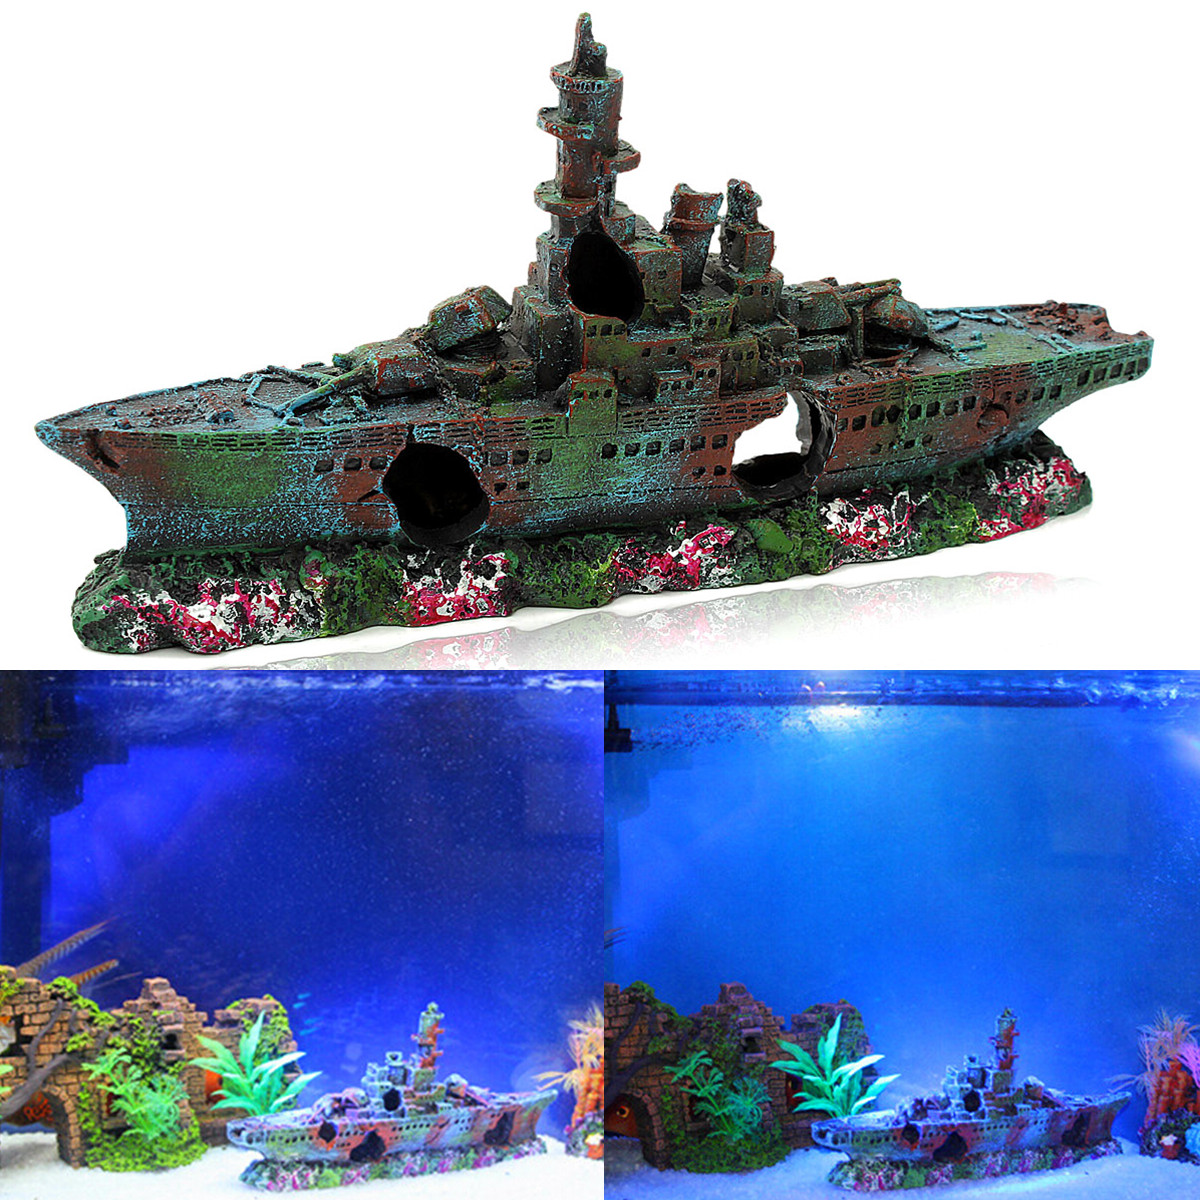 Aquarium resin boat wreck vessel ornament decoration fish for Aquarium cave decoration